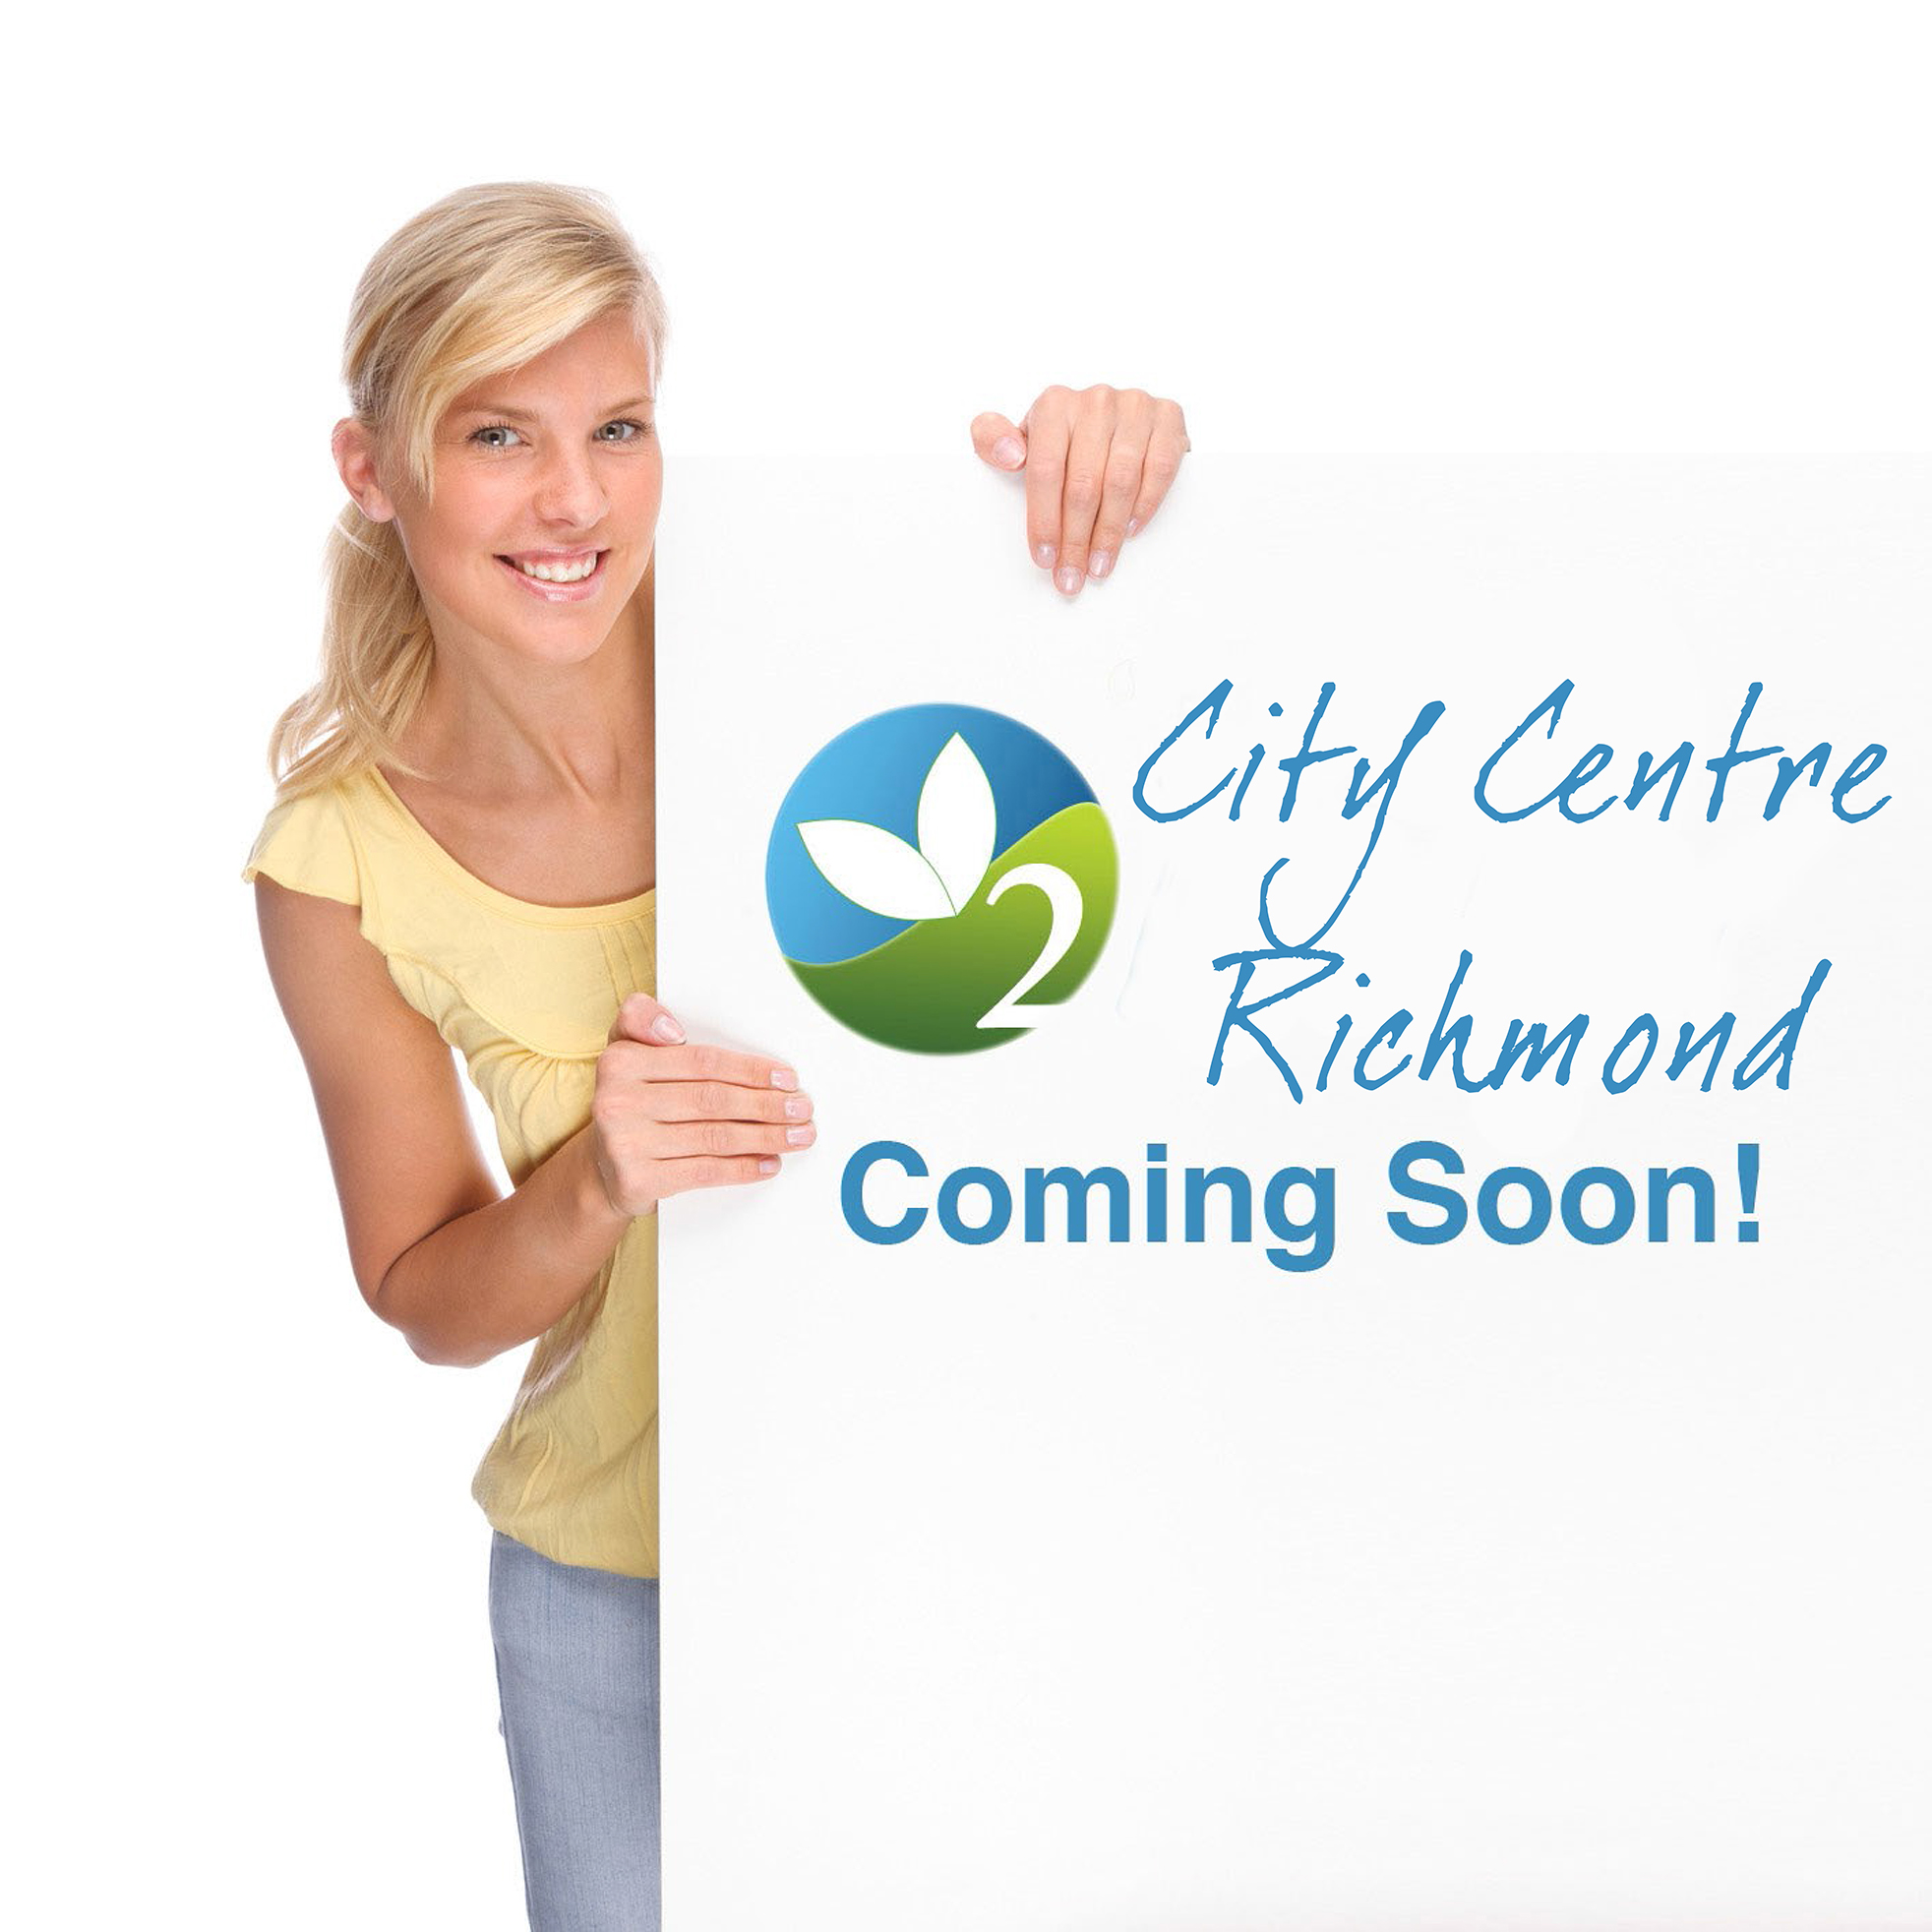 Coming Soon! Richmond City Centre Studio!